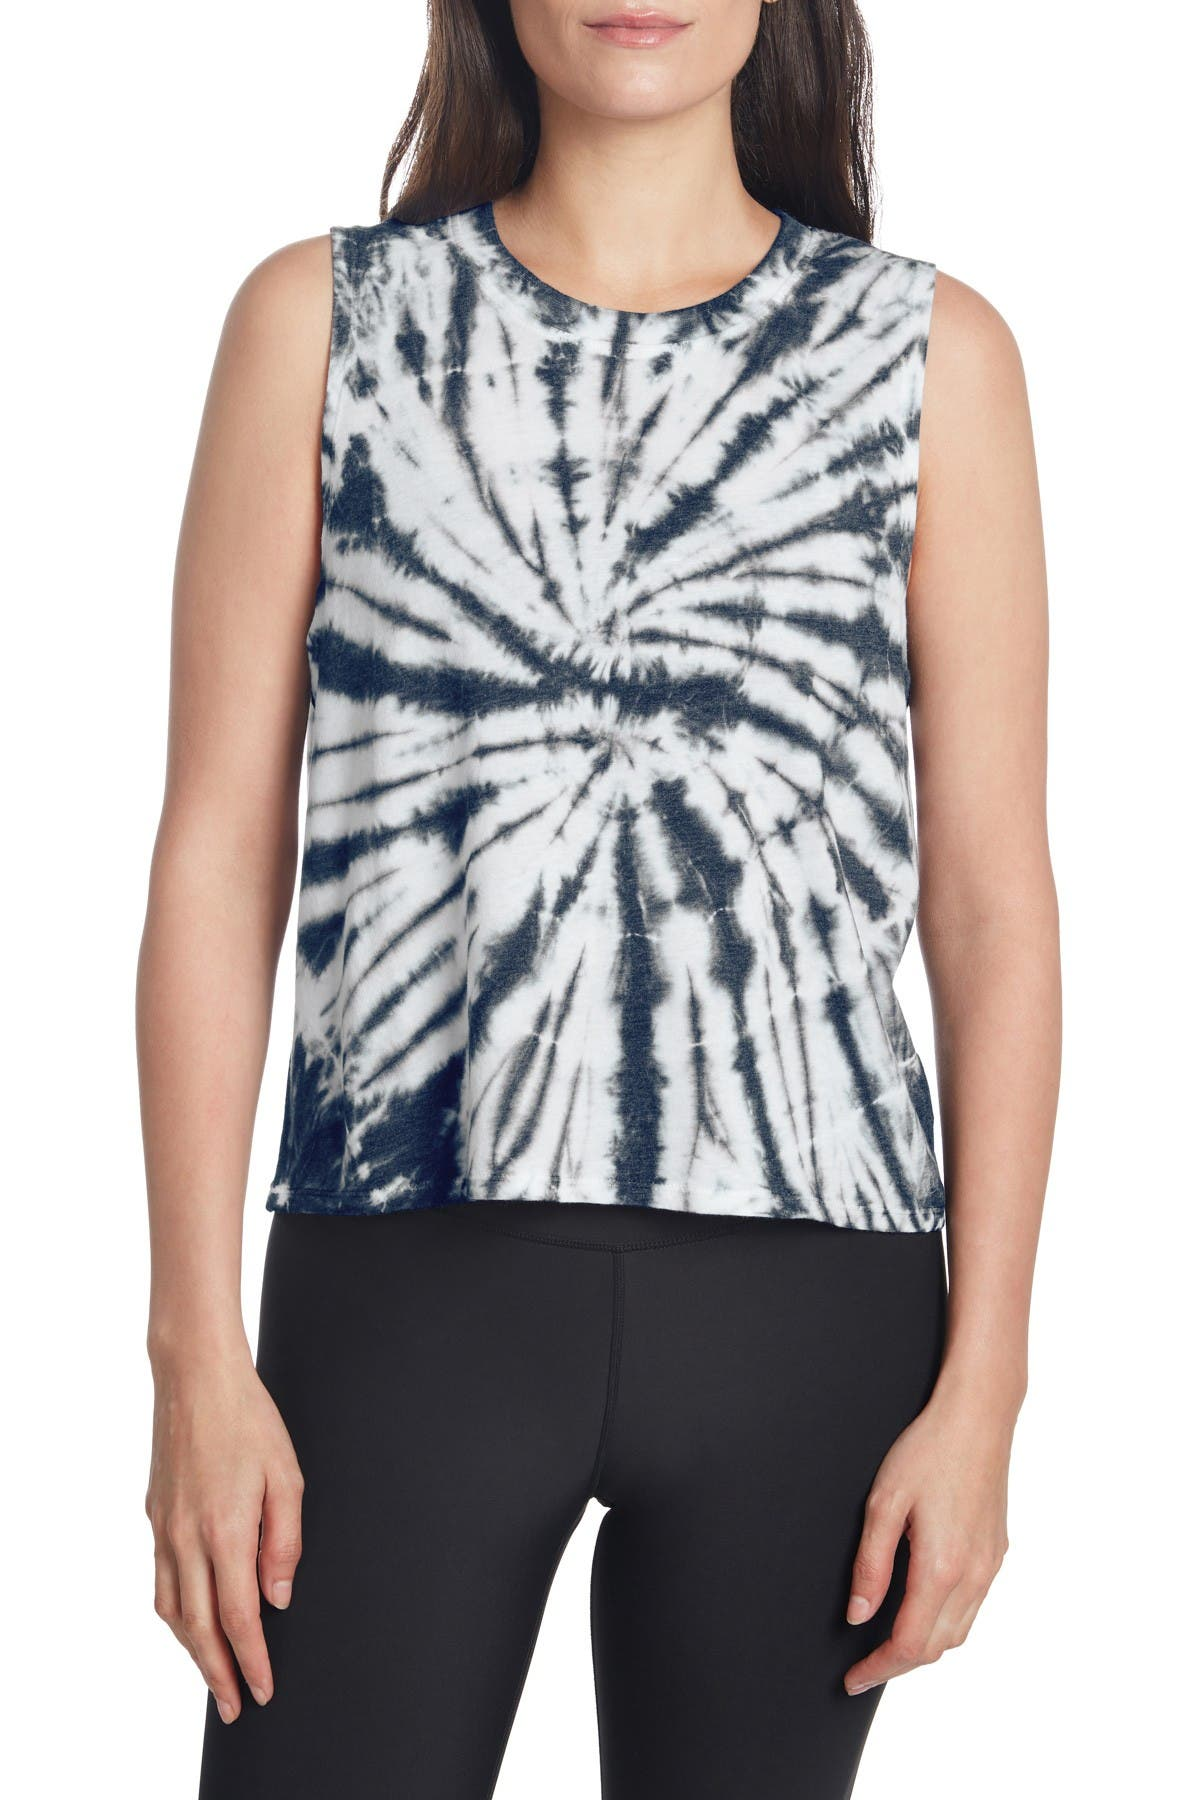 Image of SAGE COLLECTIVE Tie Dye Crew Neck Tank Top